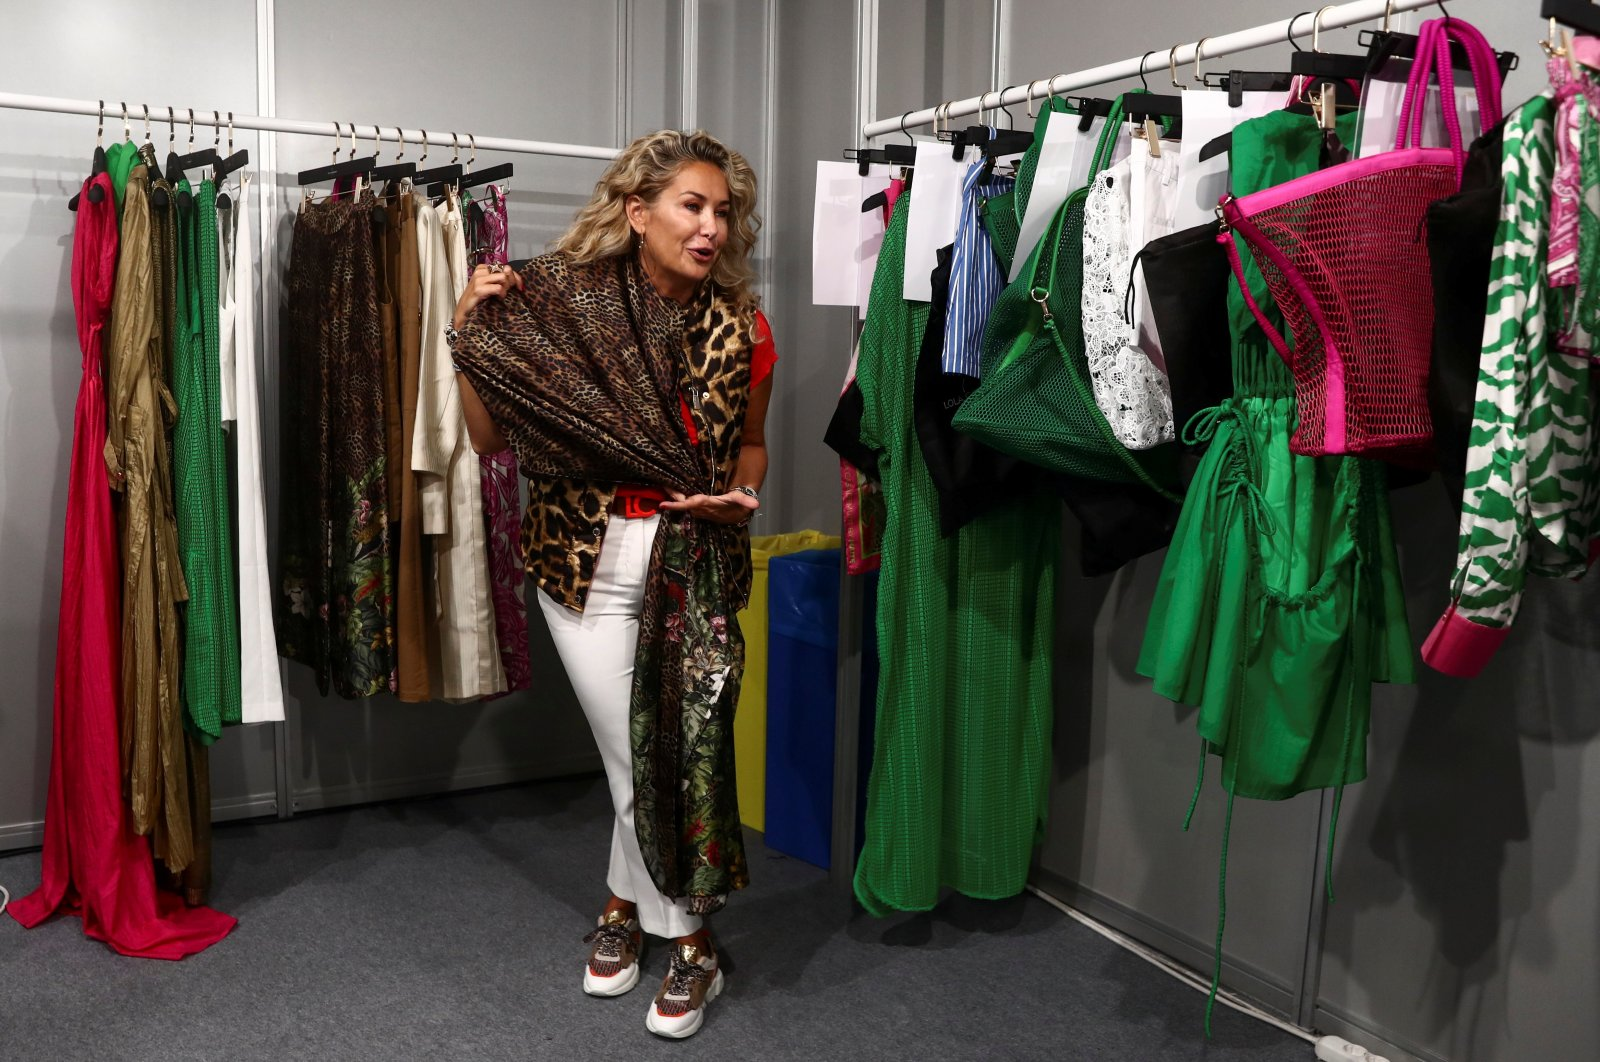 Spanish designer Maite Casademunt displays one of her outfits backstage before her show during Mercedes Benz Fashion Week in Madrid, Spain, Sept. 16, 2021. (Reuters Photo)